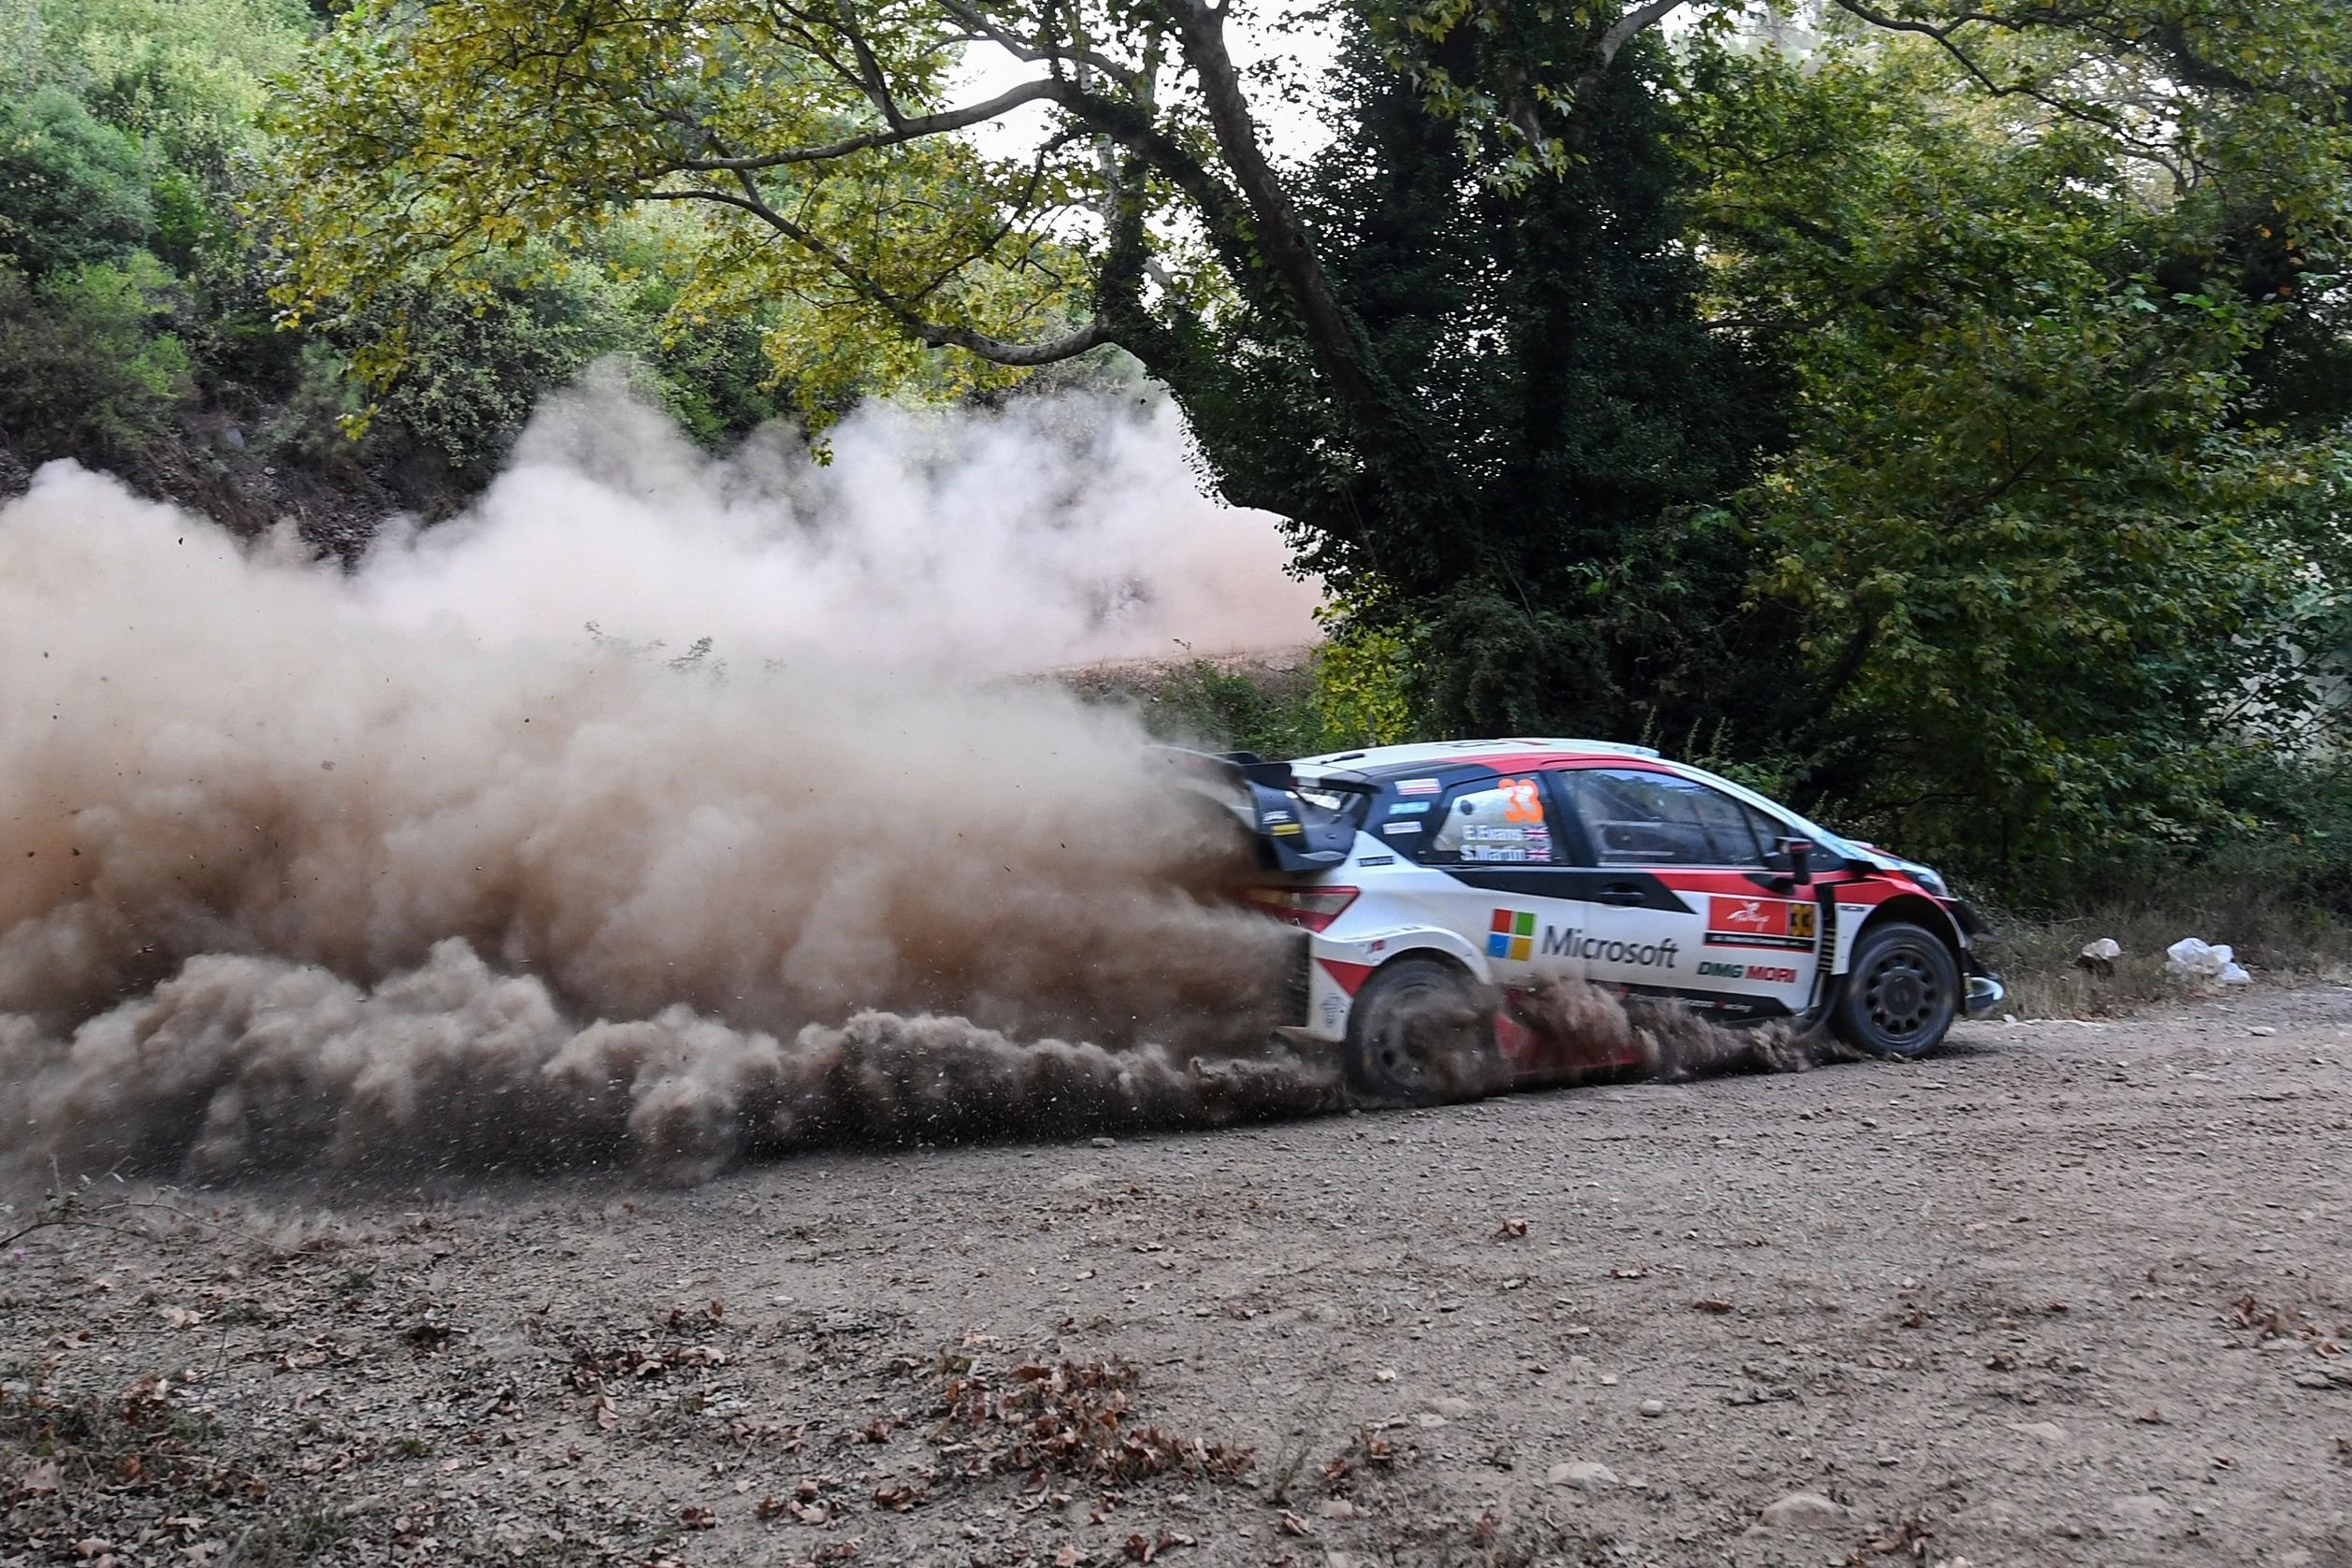 British pilot Elfyn Evans and his co-driver Scott Martin steer their Toyota Yaris WRC car during the Gokce stage on the first day of the Turkey rally as part of the WRC rally world Championship at Marmaris in Muğla, Turkey, Sept. 20, 2020. (AFP Photo)